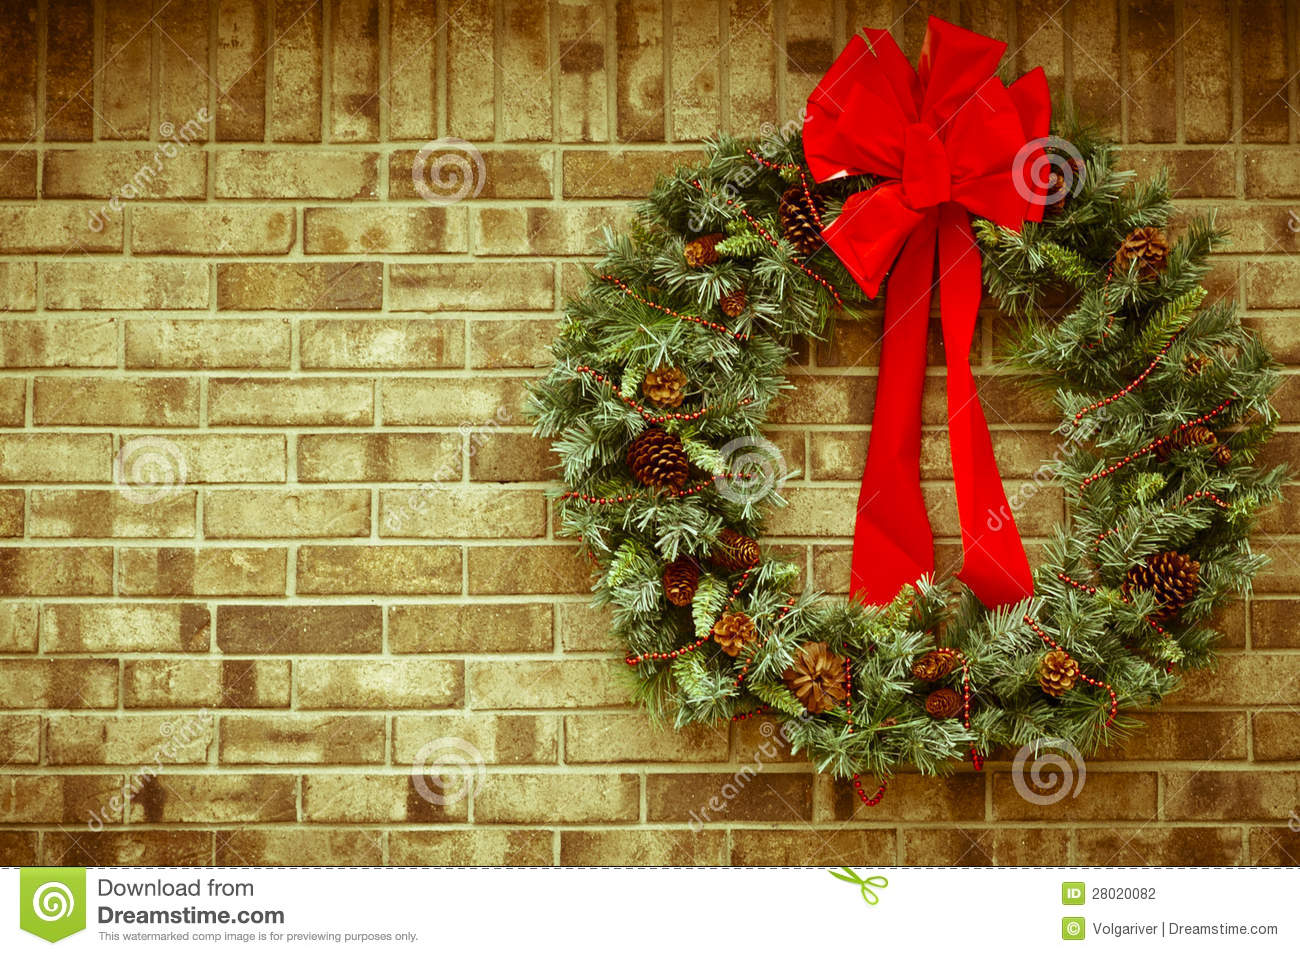 Decorated Christmas Fireplace On A Brick Wall Stock Photo Image Christmas Wreath On Rustic Brick Wall. Royalty-free Stock